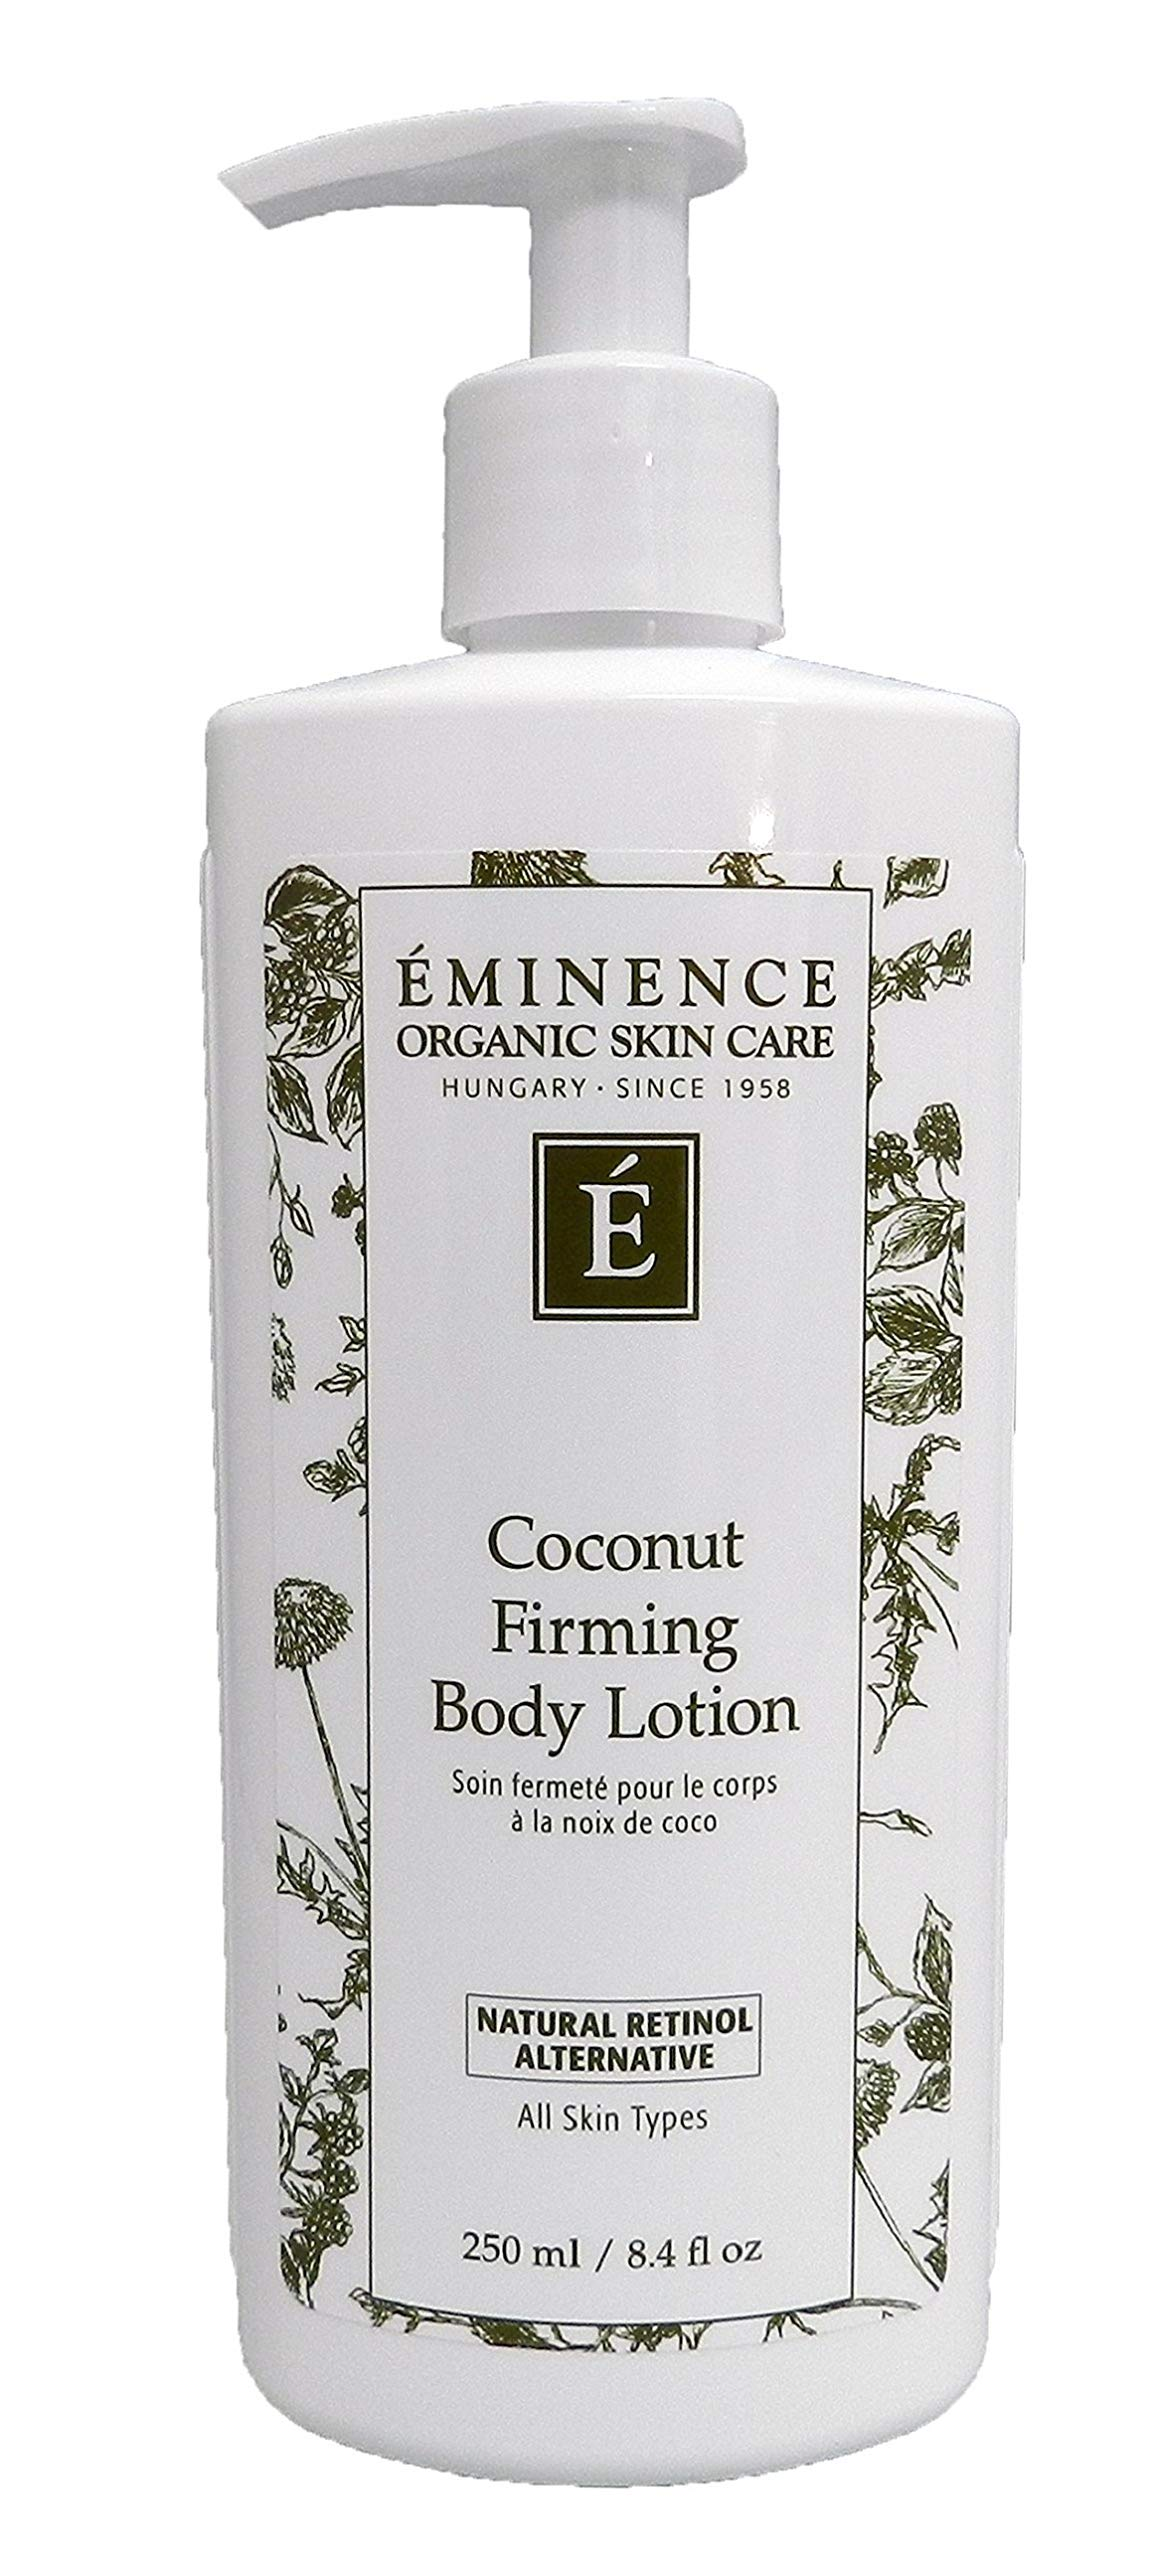 Eminence Coconut Firming Body Lotion, 8.4 Ounce by Eminence